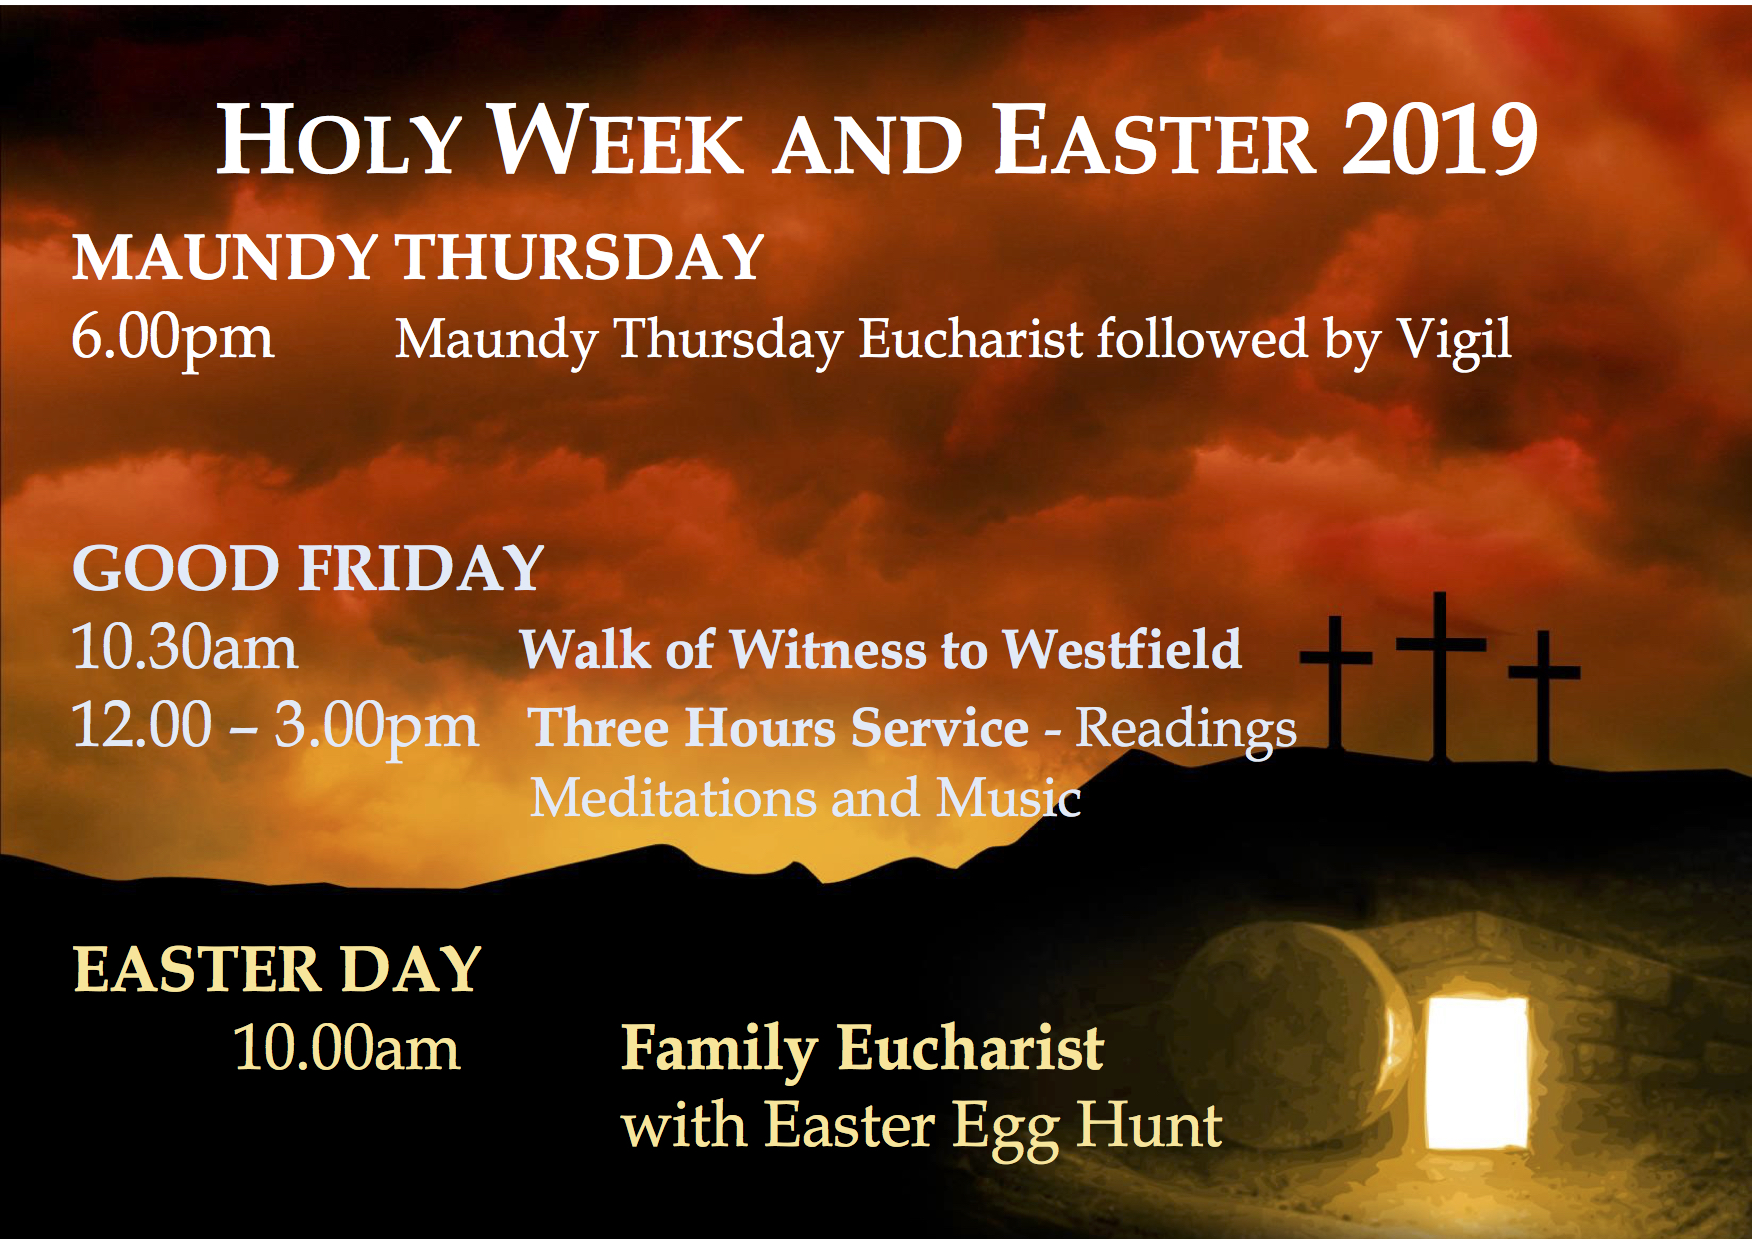 Holy Week 2019 dramatic poster.jpg